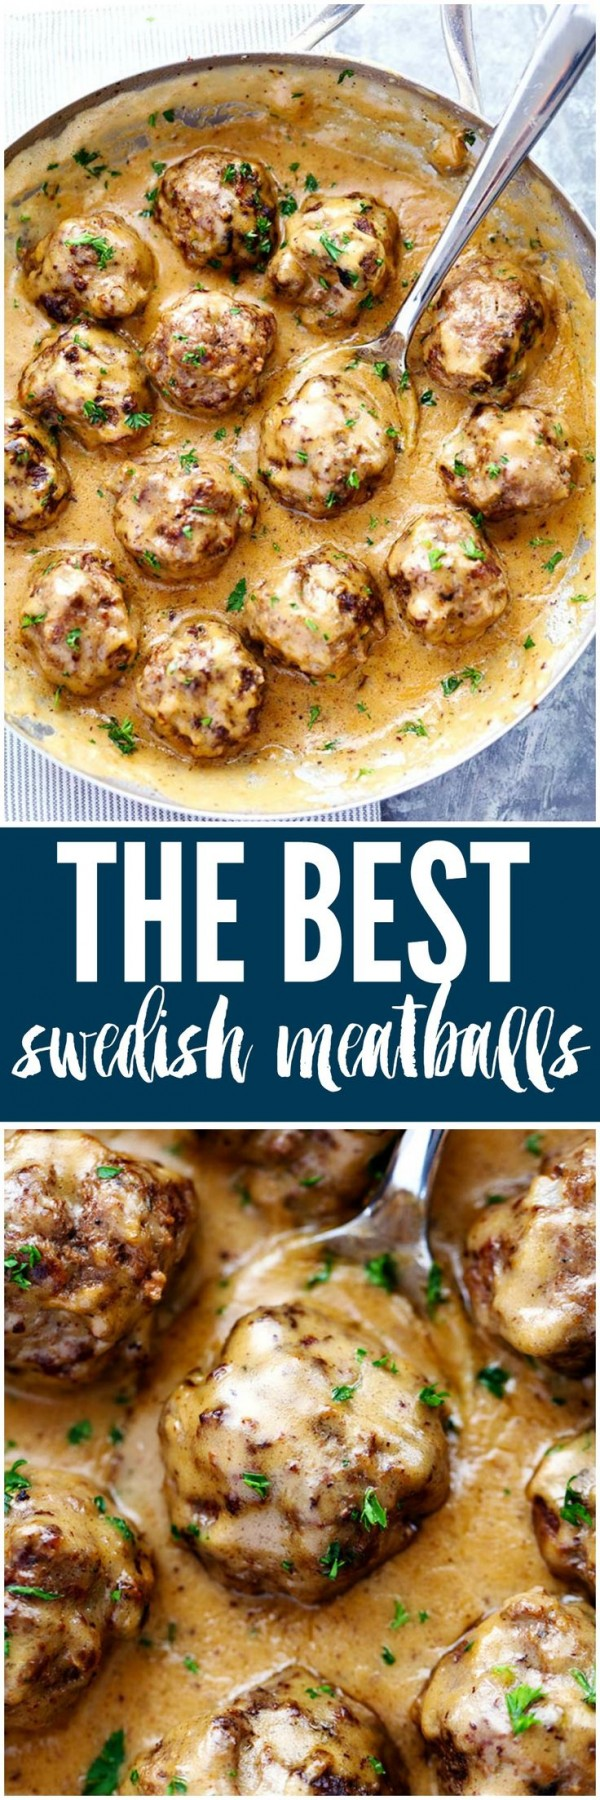 Get the recipe The Best Swedish Meatballs @recipes_to_go